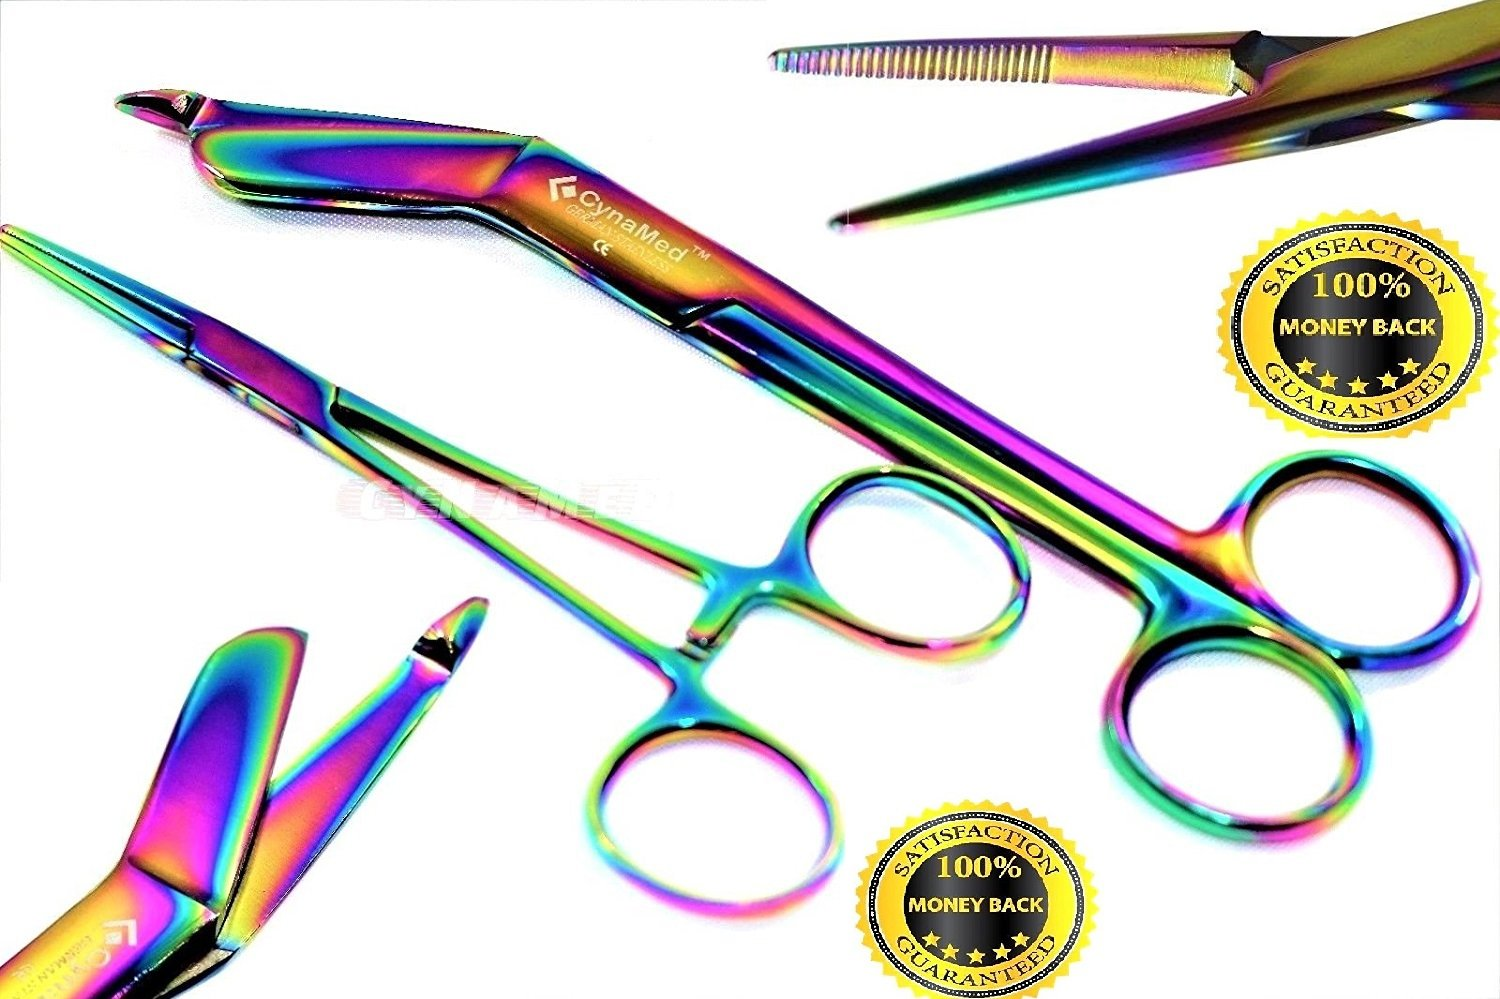 New Premium Lister Bandage Scissors 5.5 inches Plus Hemostat Forceps Straight Multi Color Rainbow Color Stainless Steel Set of 2 by CYNAMED